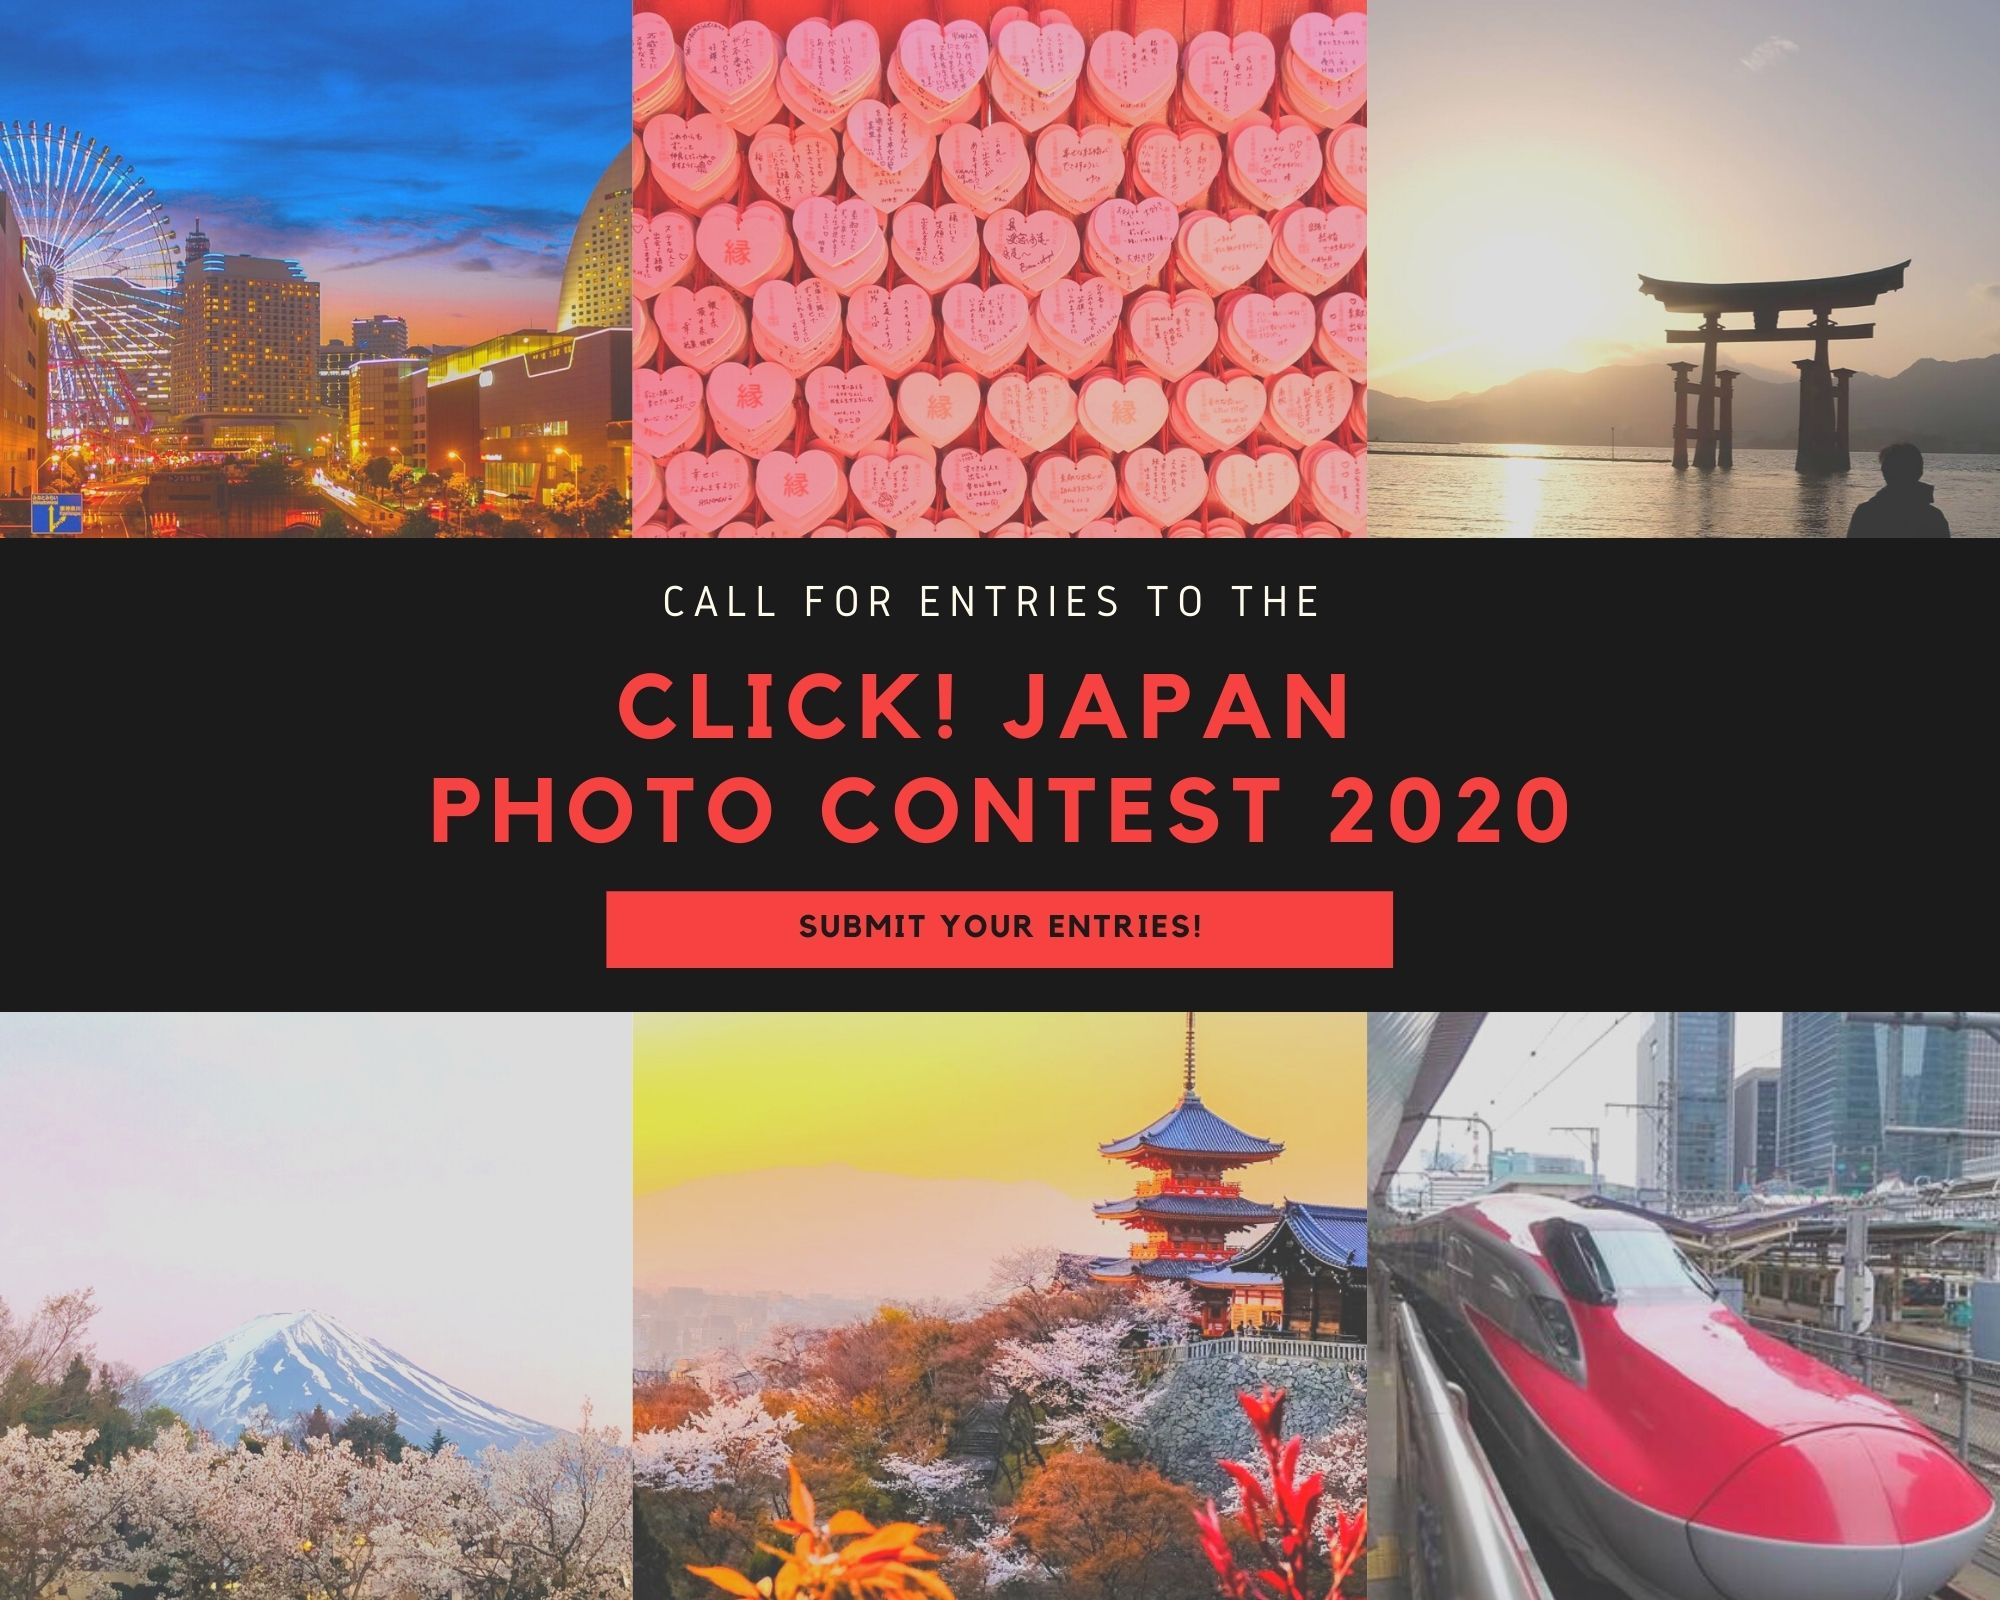 Call for entries to the Click! Japan Photo Contest 2020 (October 29, 2020)